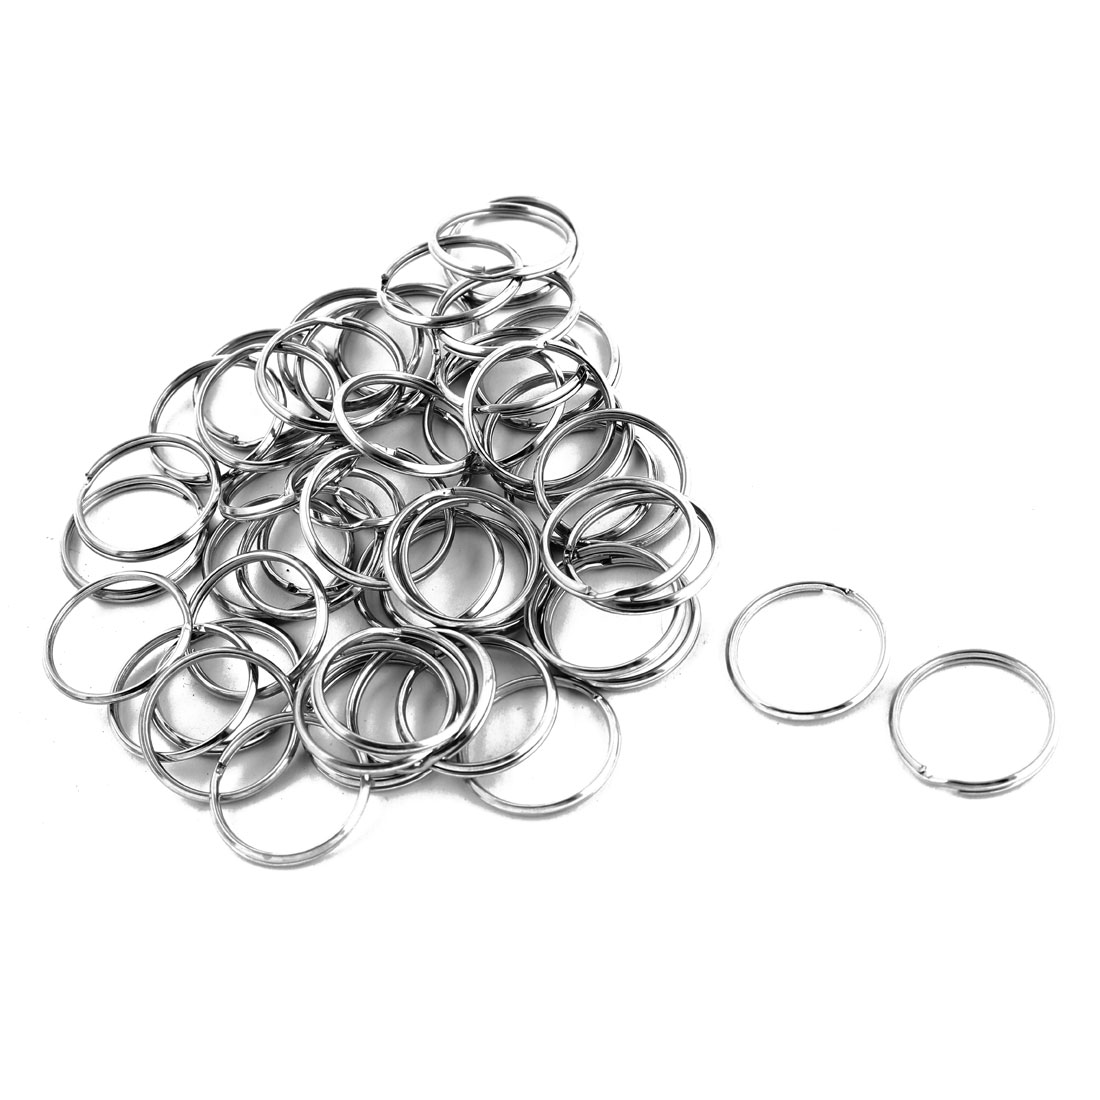 "50 Pcs Silver Tone 1"" Diameter Metal Split Key Rings Keychains"